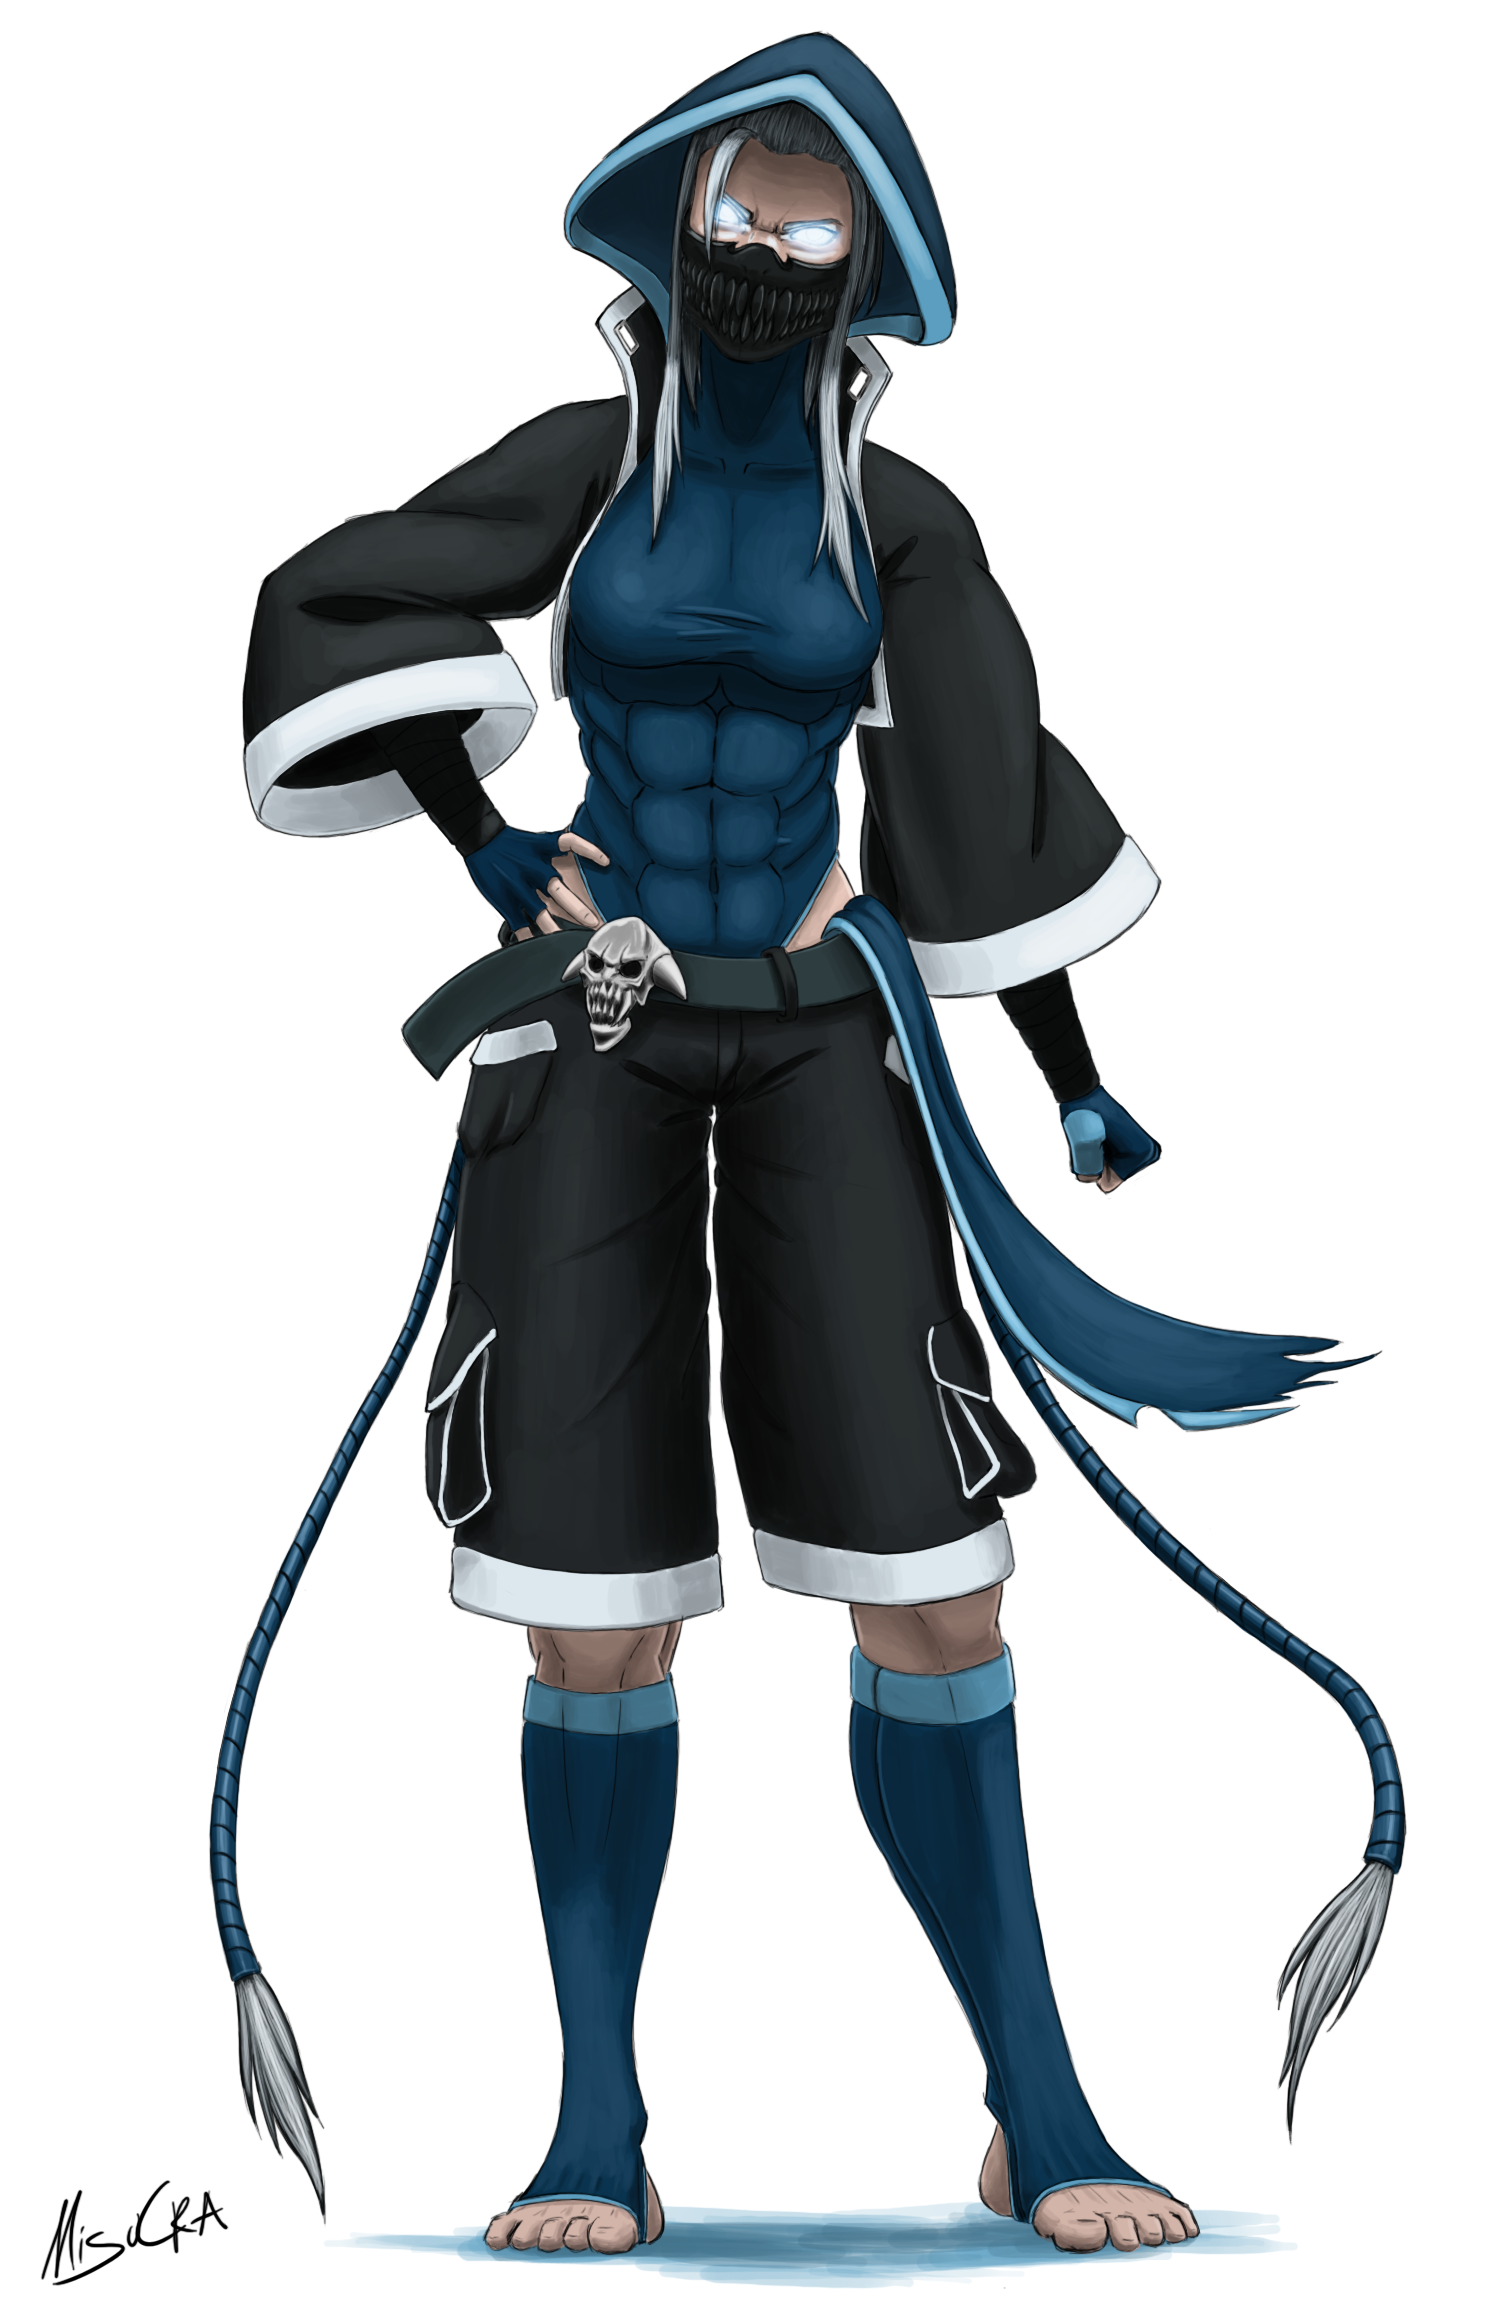 mortal_kombat_frost_final_color_by_misucra-d9phmjt.png